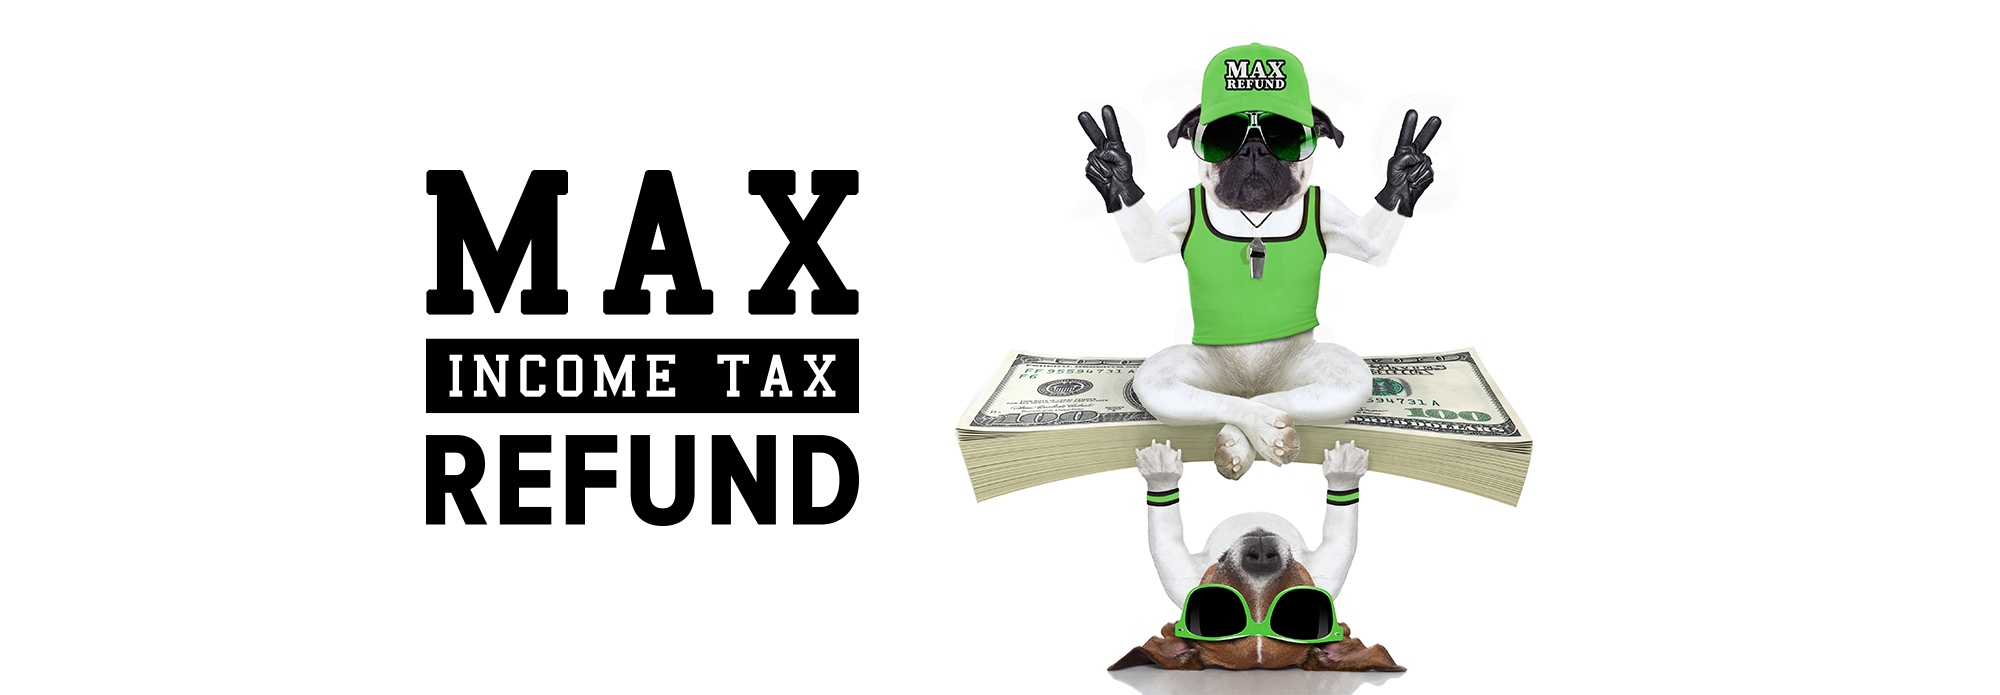 Puma_Accounting_Professional_Income_Tax-header-MAX_REFUND.jpg